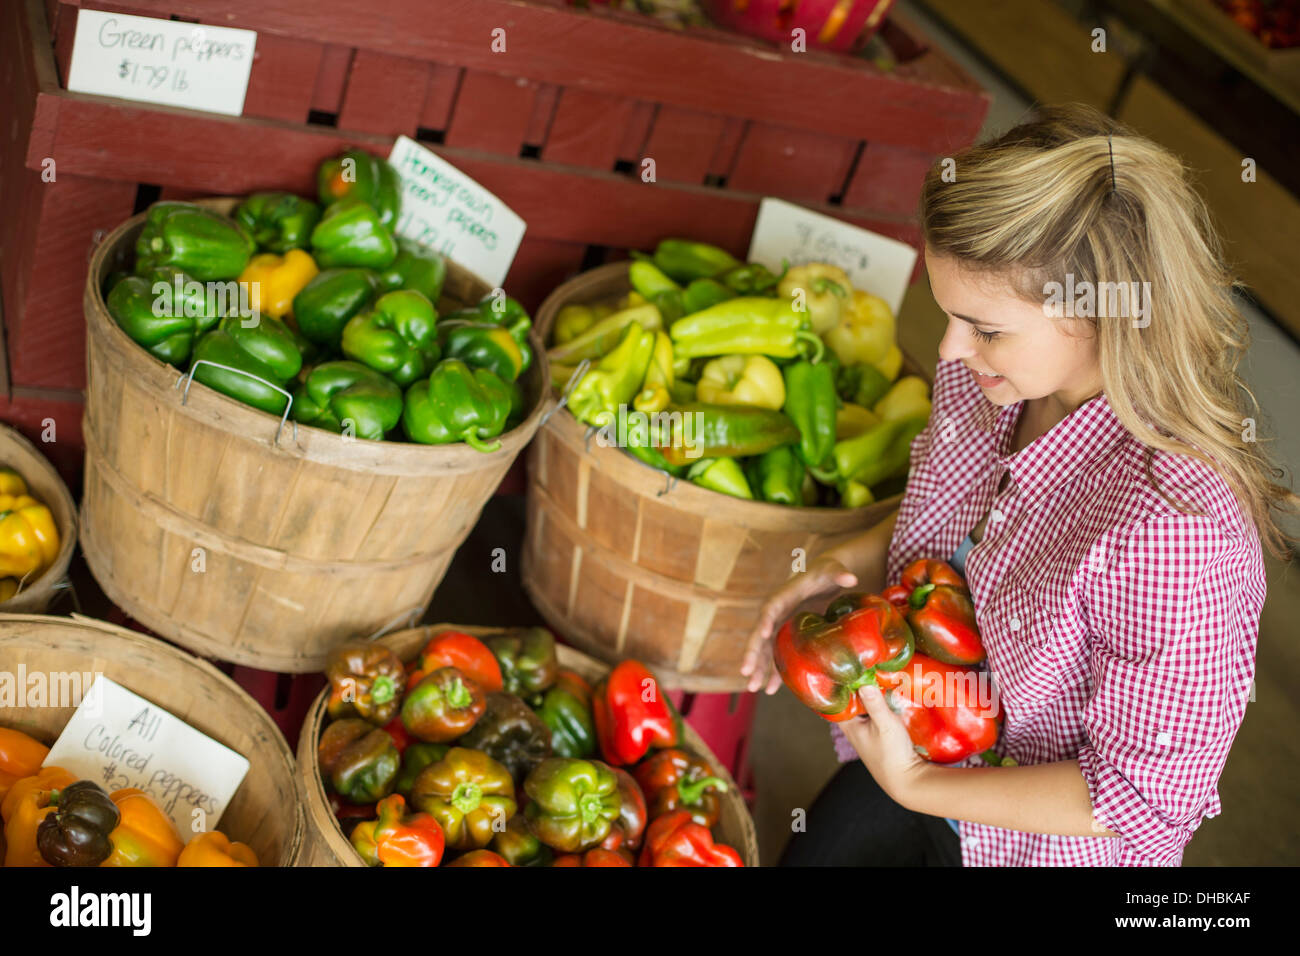 Working on an organic farm. A young blonde haired woman sorting different types of bell pepper for sale. - Stock Image